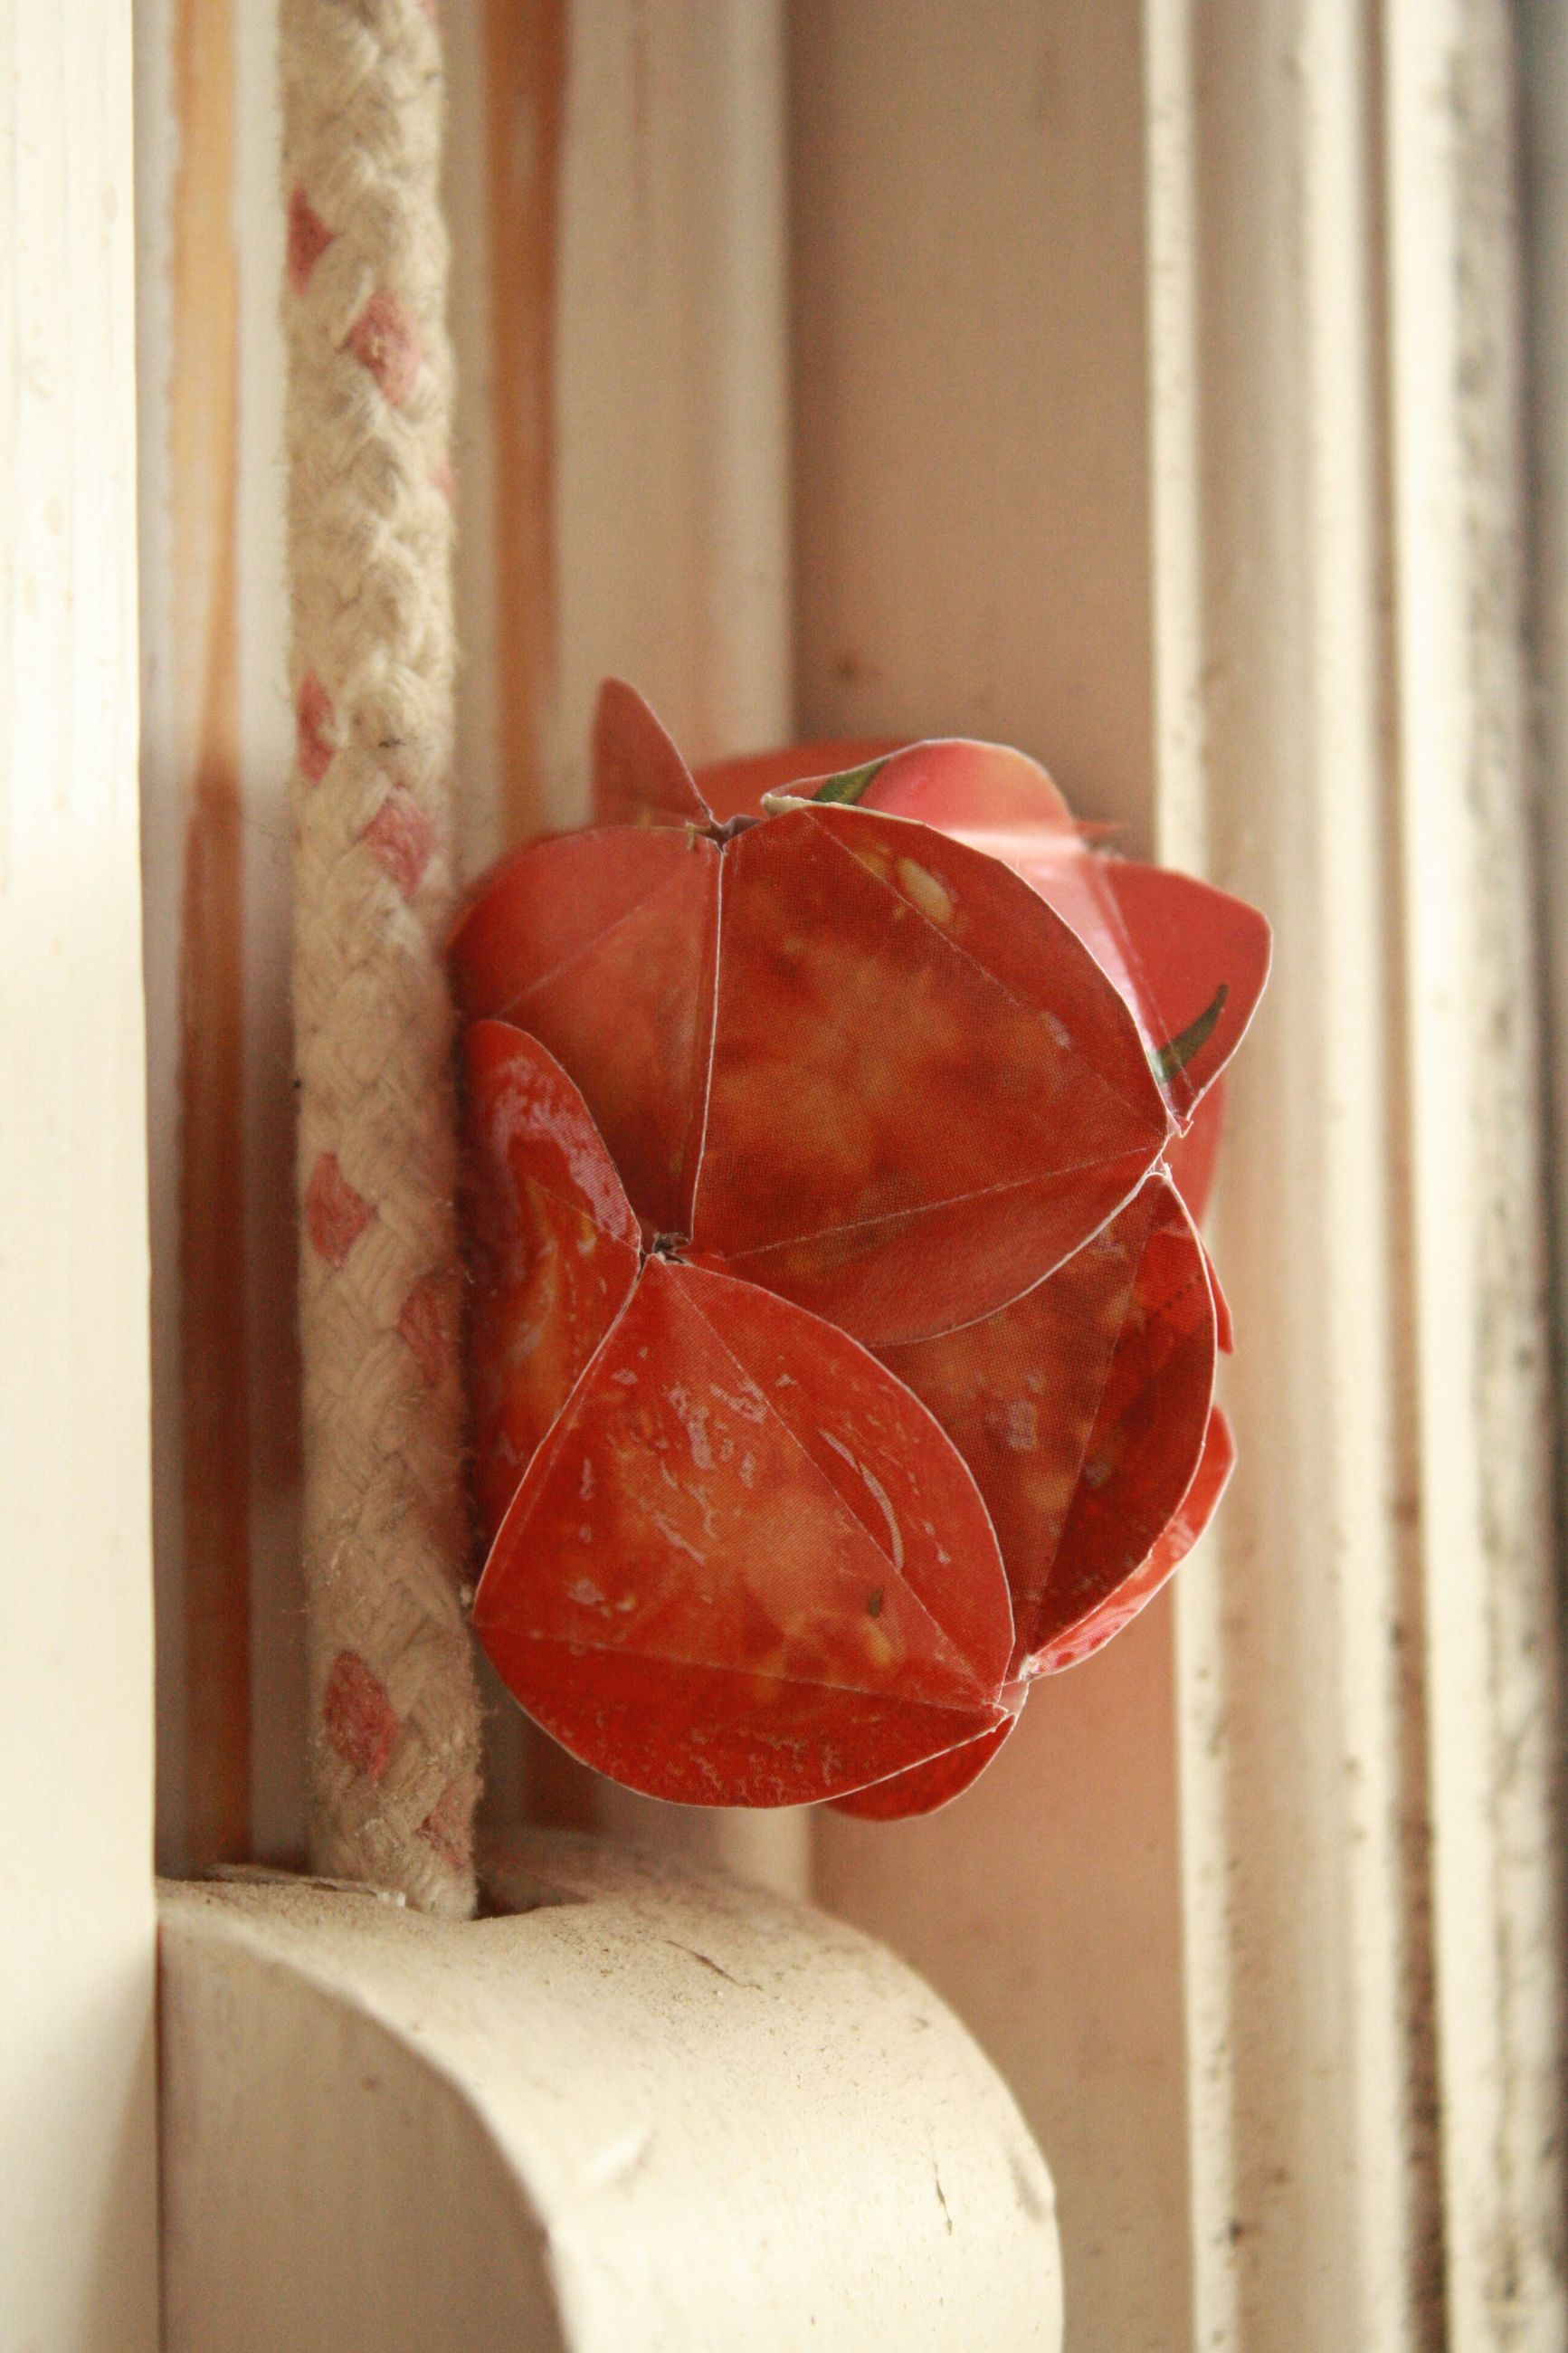 red, close-up, indoors, leaf, freshness, focus on foreground, wall - building feature, no people, wet, fragility, day, nature, drop, stem, fruit, orange color, wood - material, season, growth